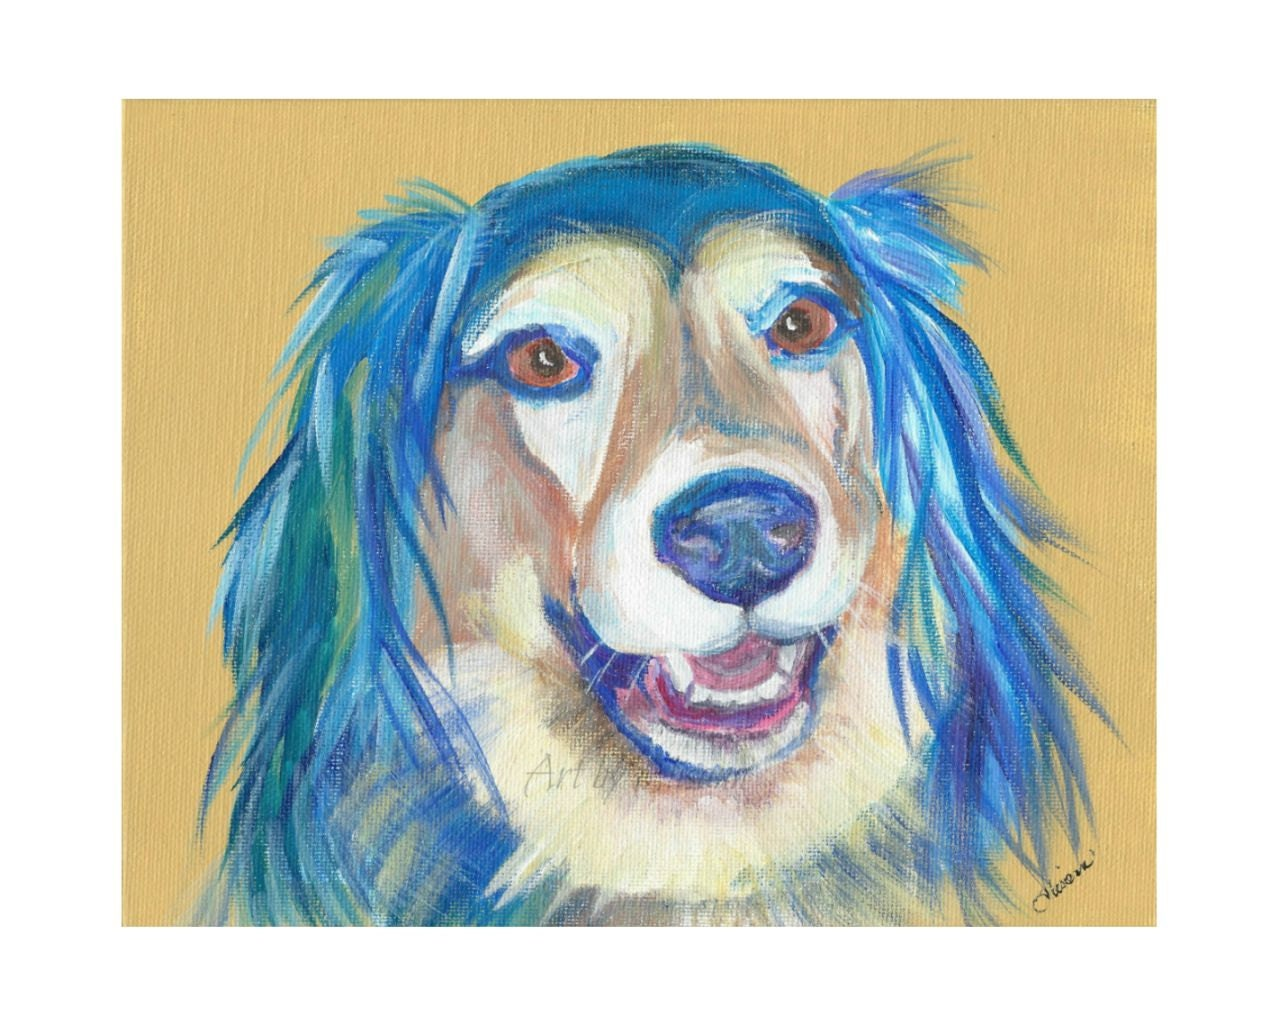 Long-haired Dachshund/Lab Mix -FREE U.S.A. Shipping - Dog Art -8x10 Art Print from original art- Dog Portrait - Dog Lovers -TAGT